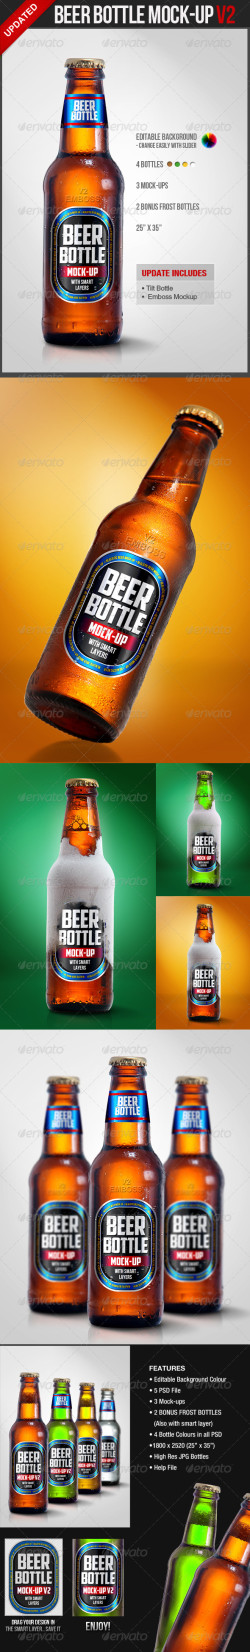 beer bottle mockup update